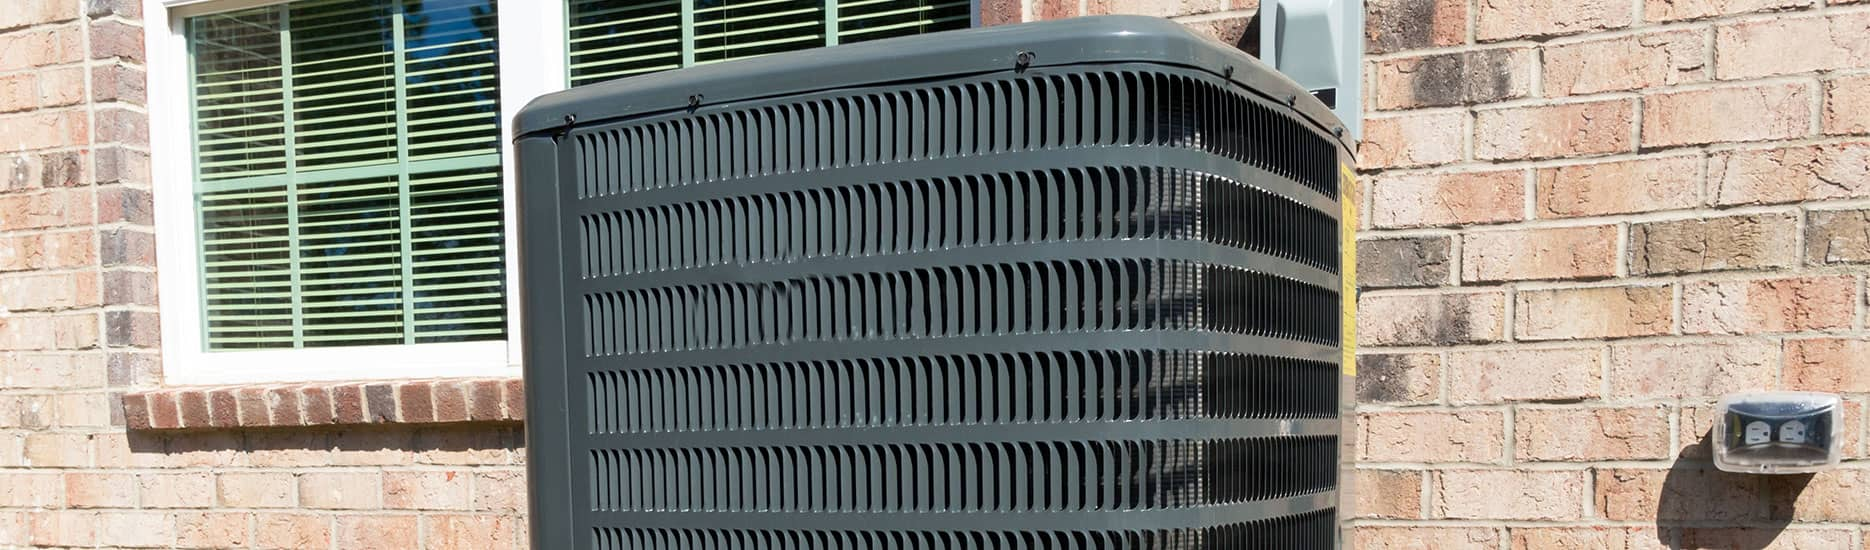 Air Conditioning Services, Furnace Repair and Plumbing Services